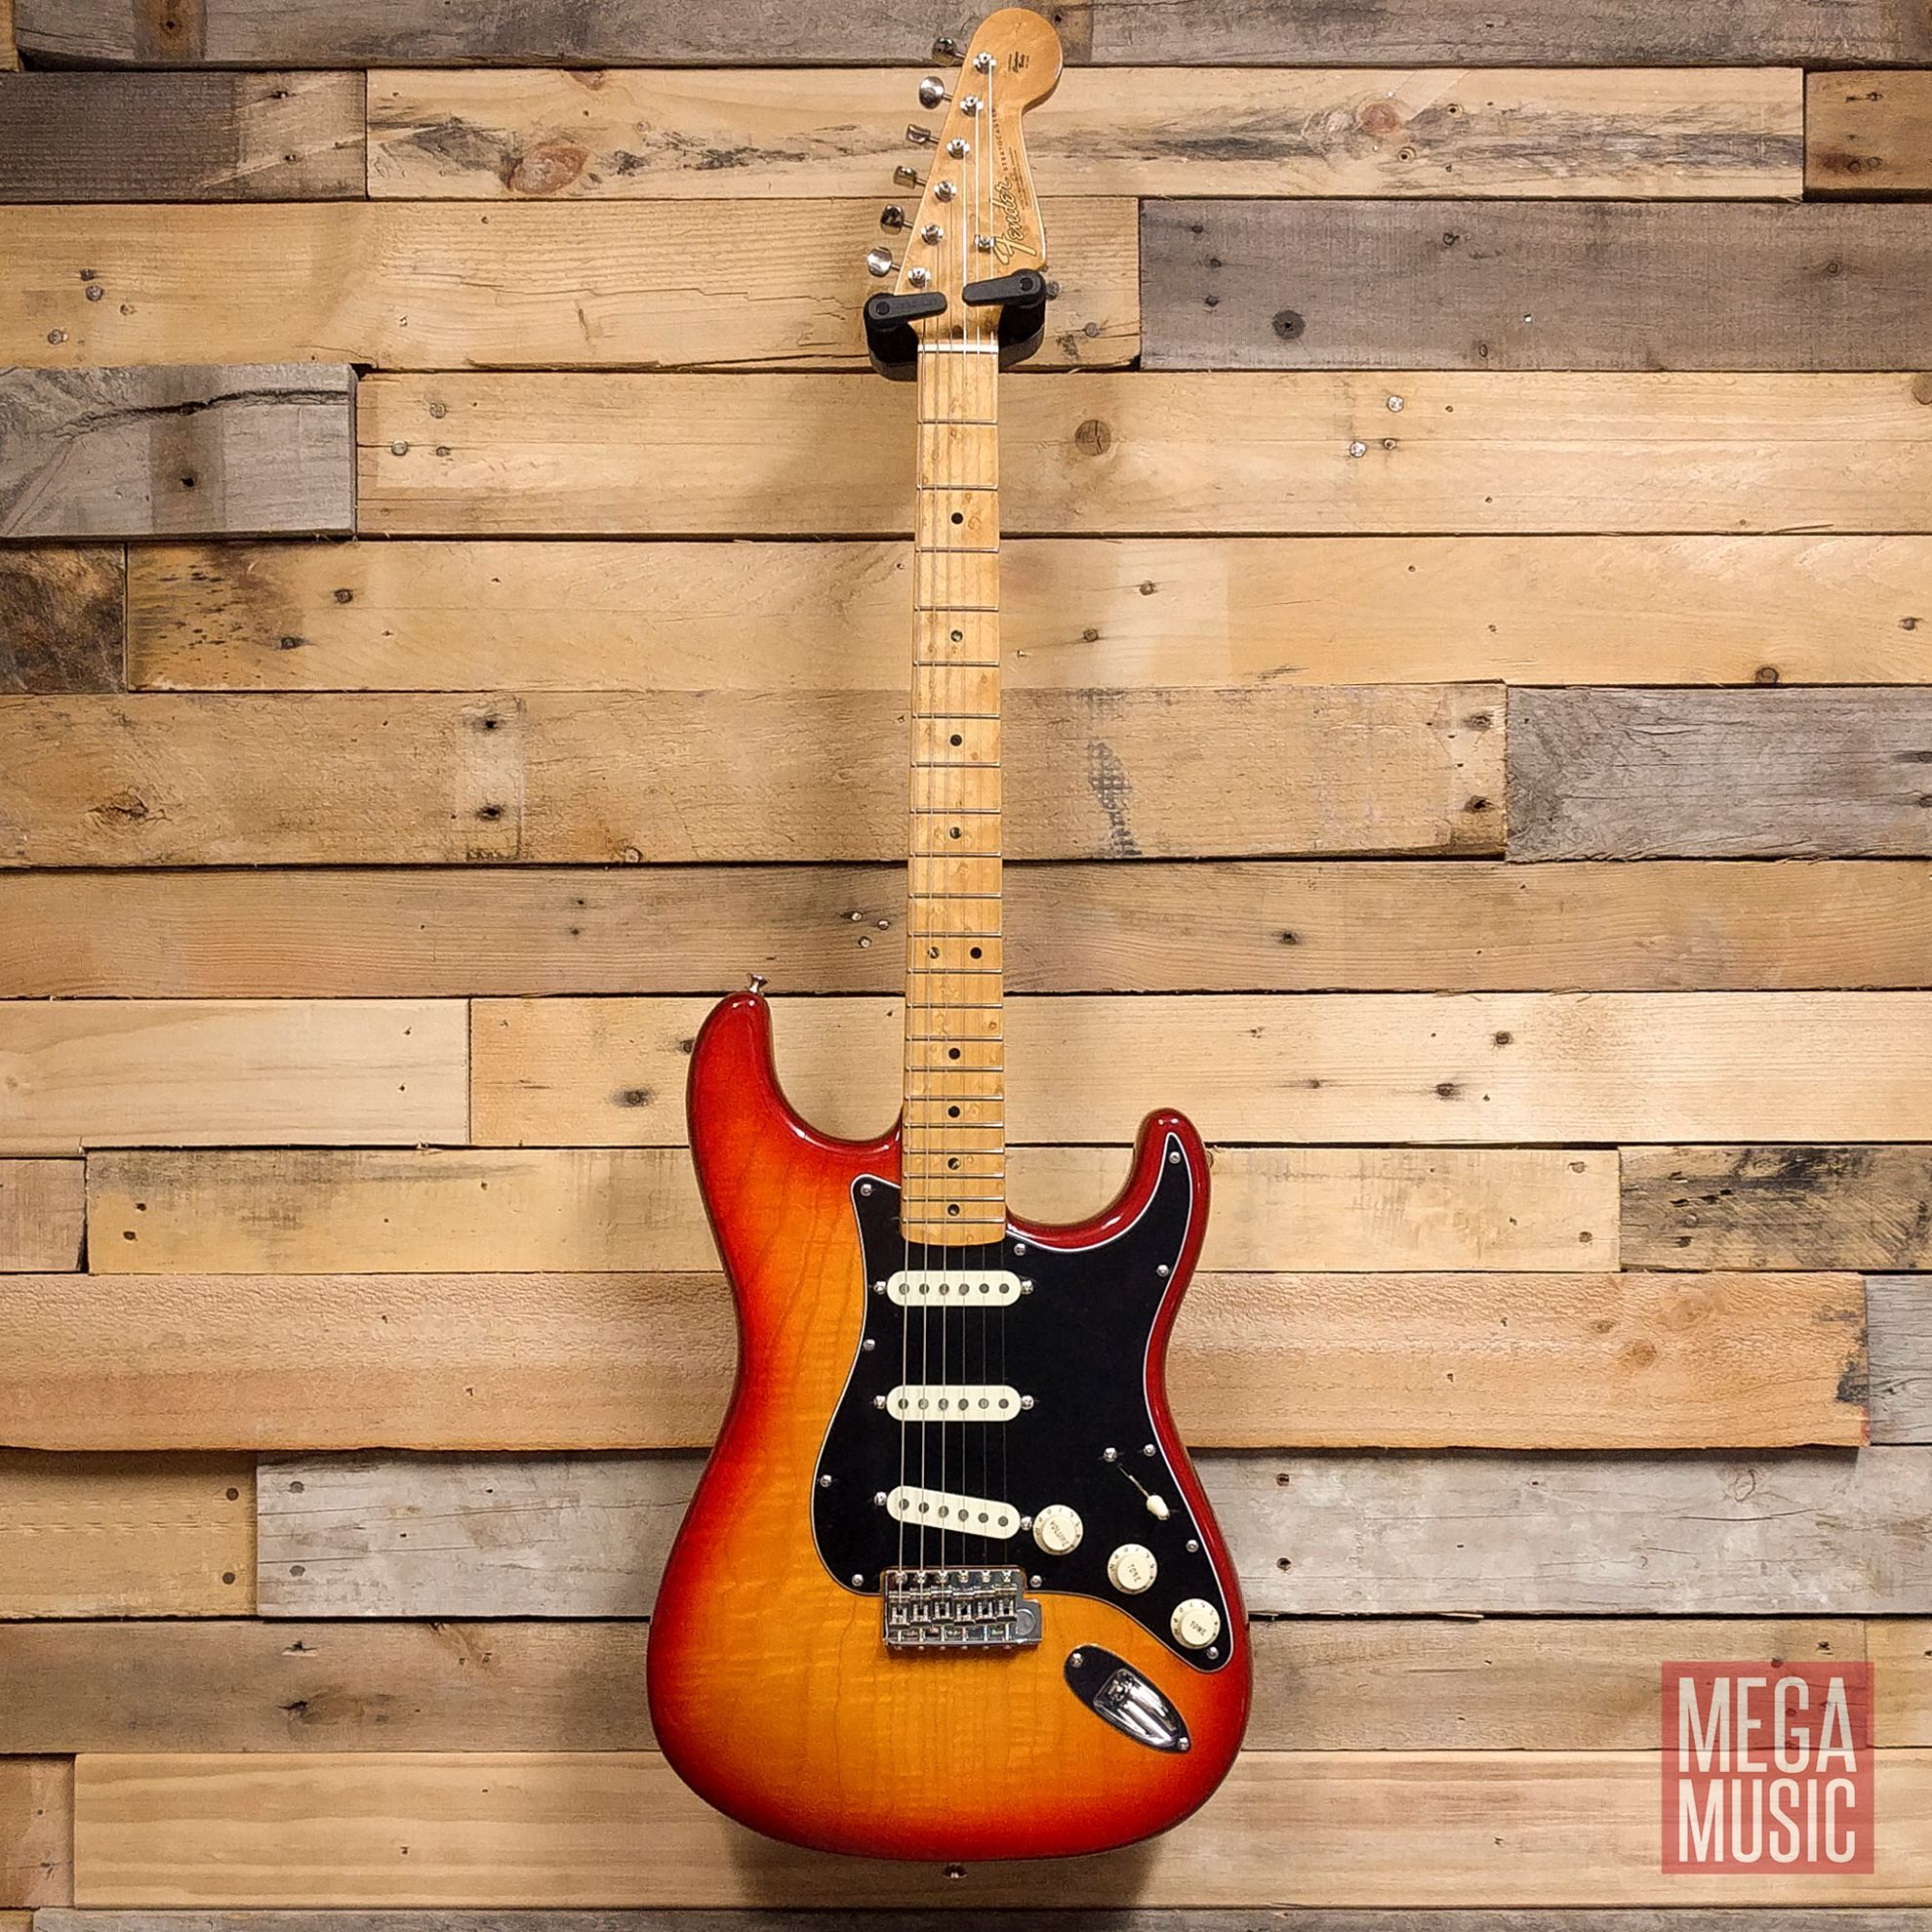 Fender 2019 Rarities Collection Flame Ash Top Stratocaster Plasma Red Burst